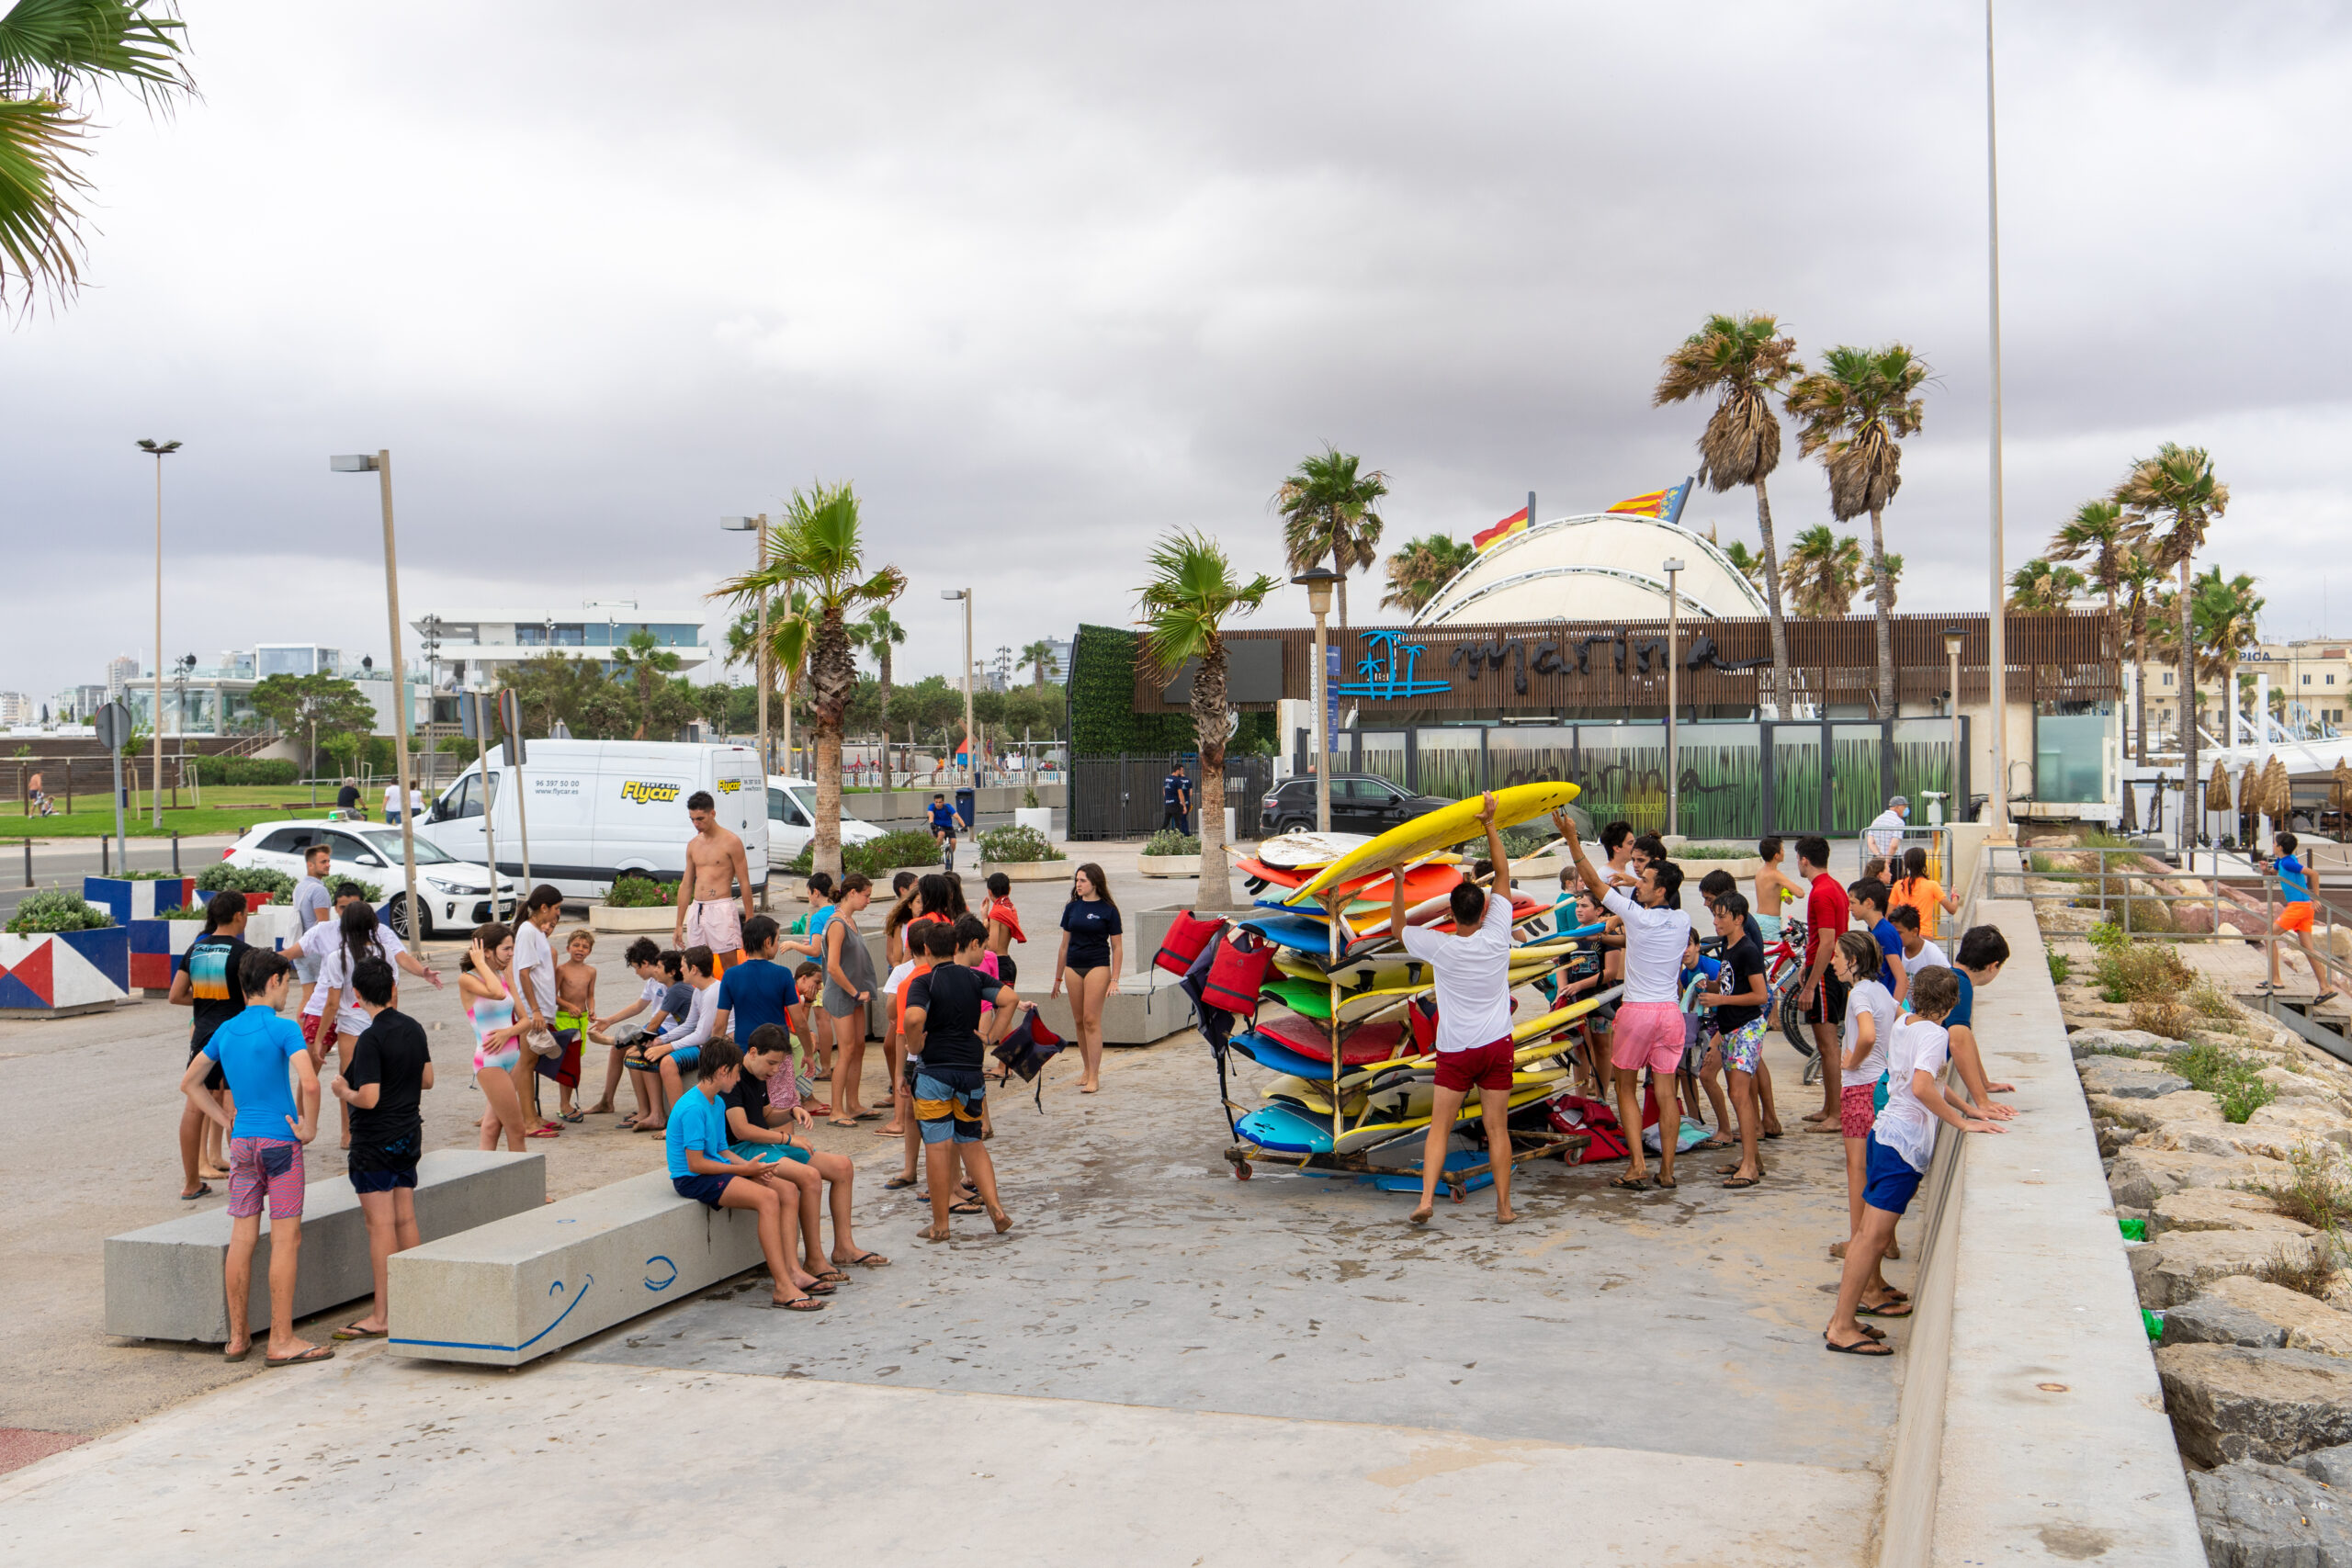 VALENCIA, SPAIN - Jun 21, 2020: group of people doing sports